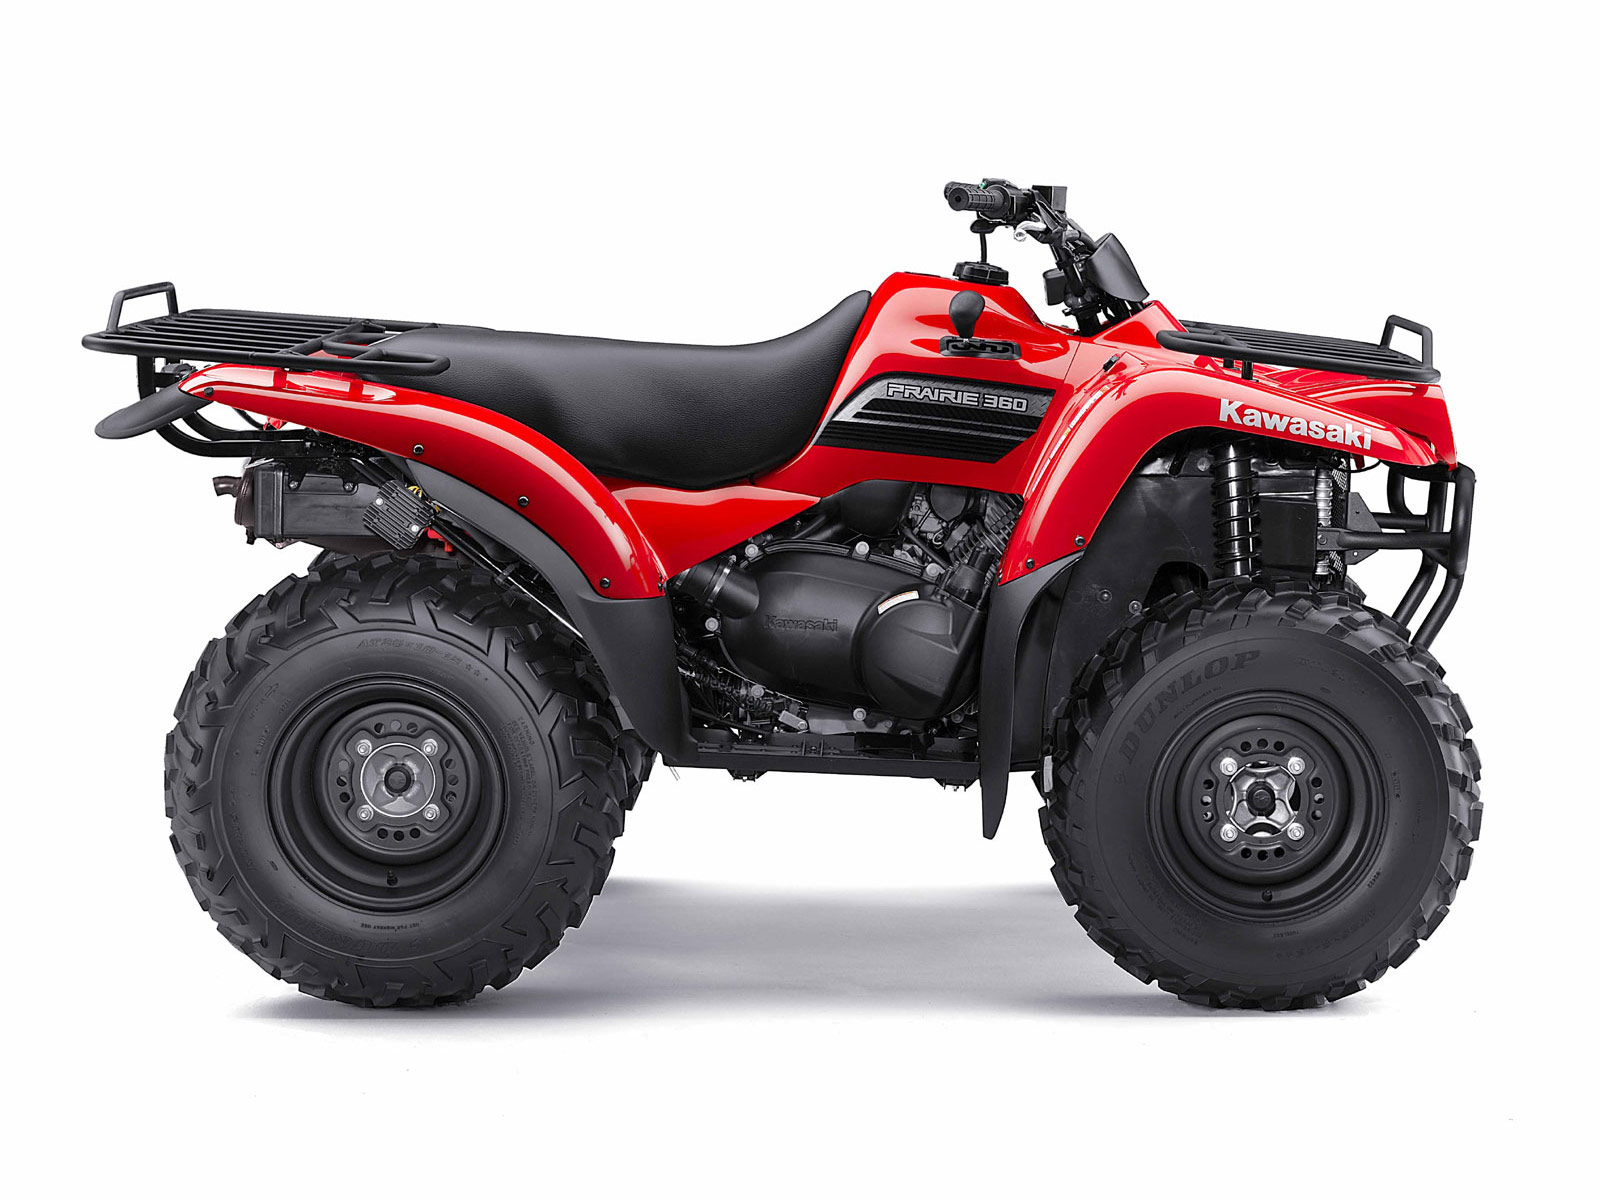 Honda 200x Engine Diagram together with 189675 Need Wiring Diagram Lt250r 2 furthermore Polaris 400 Wiring Diagram together with Detailfs as well Whelen 500 Wiring Diagram. on trx 90 wiring diagram get free image about